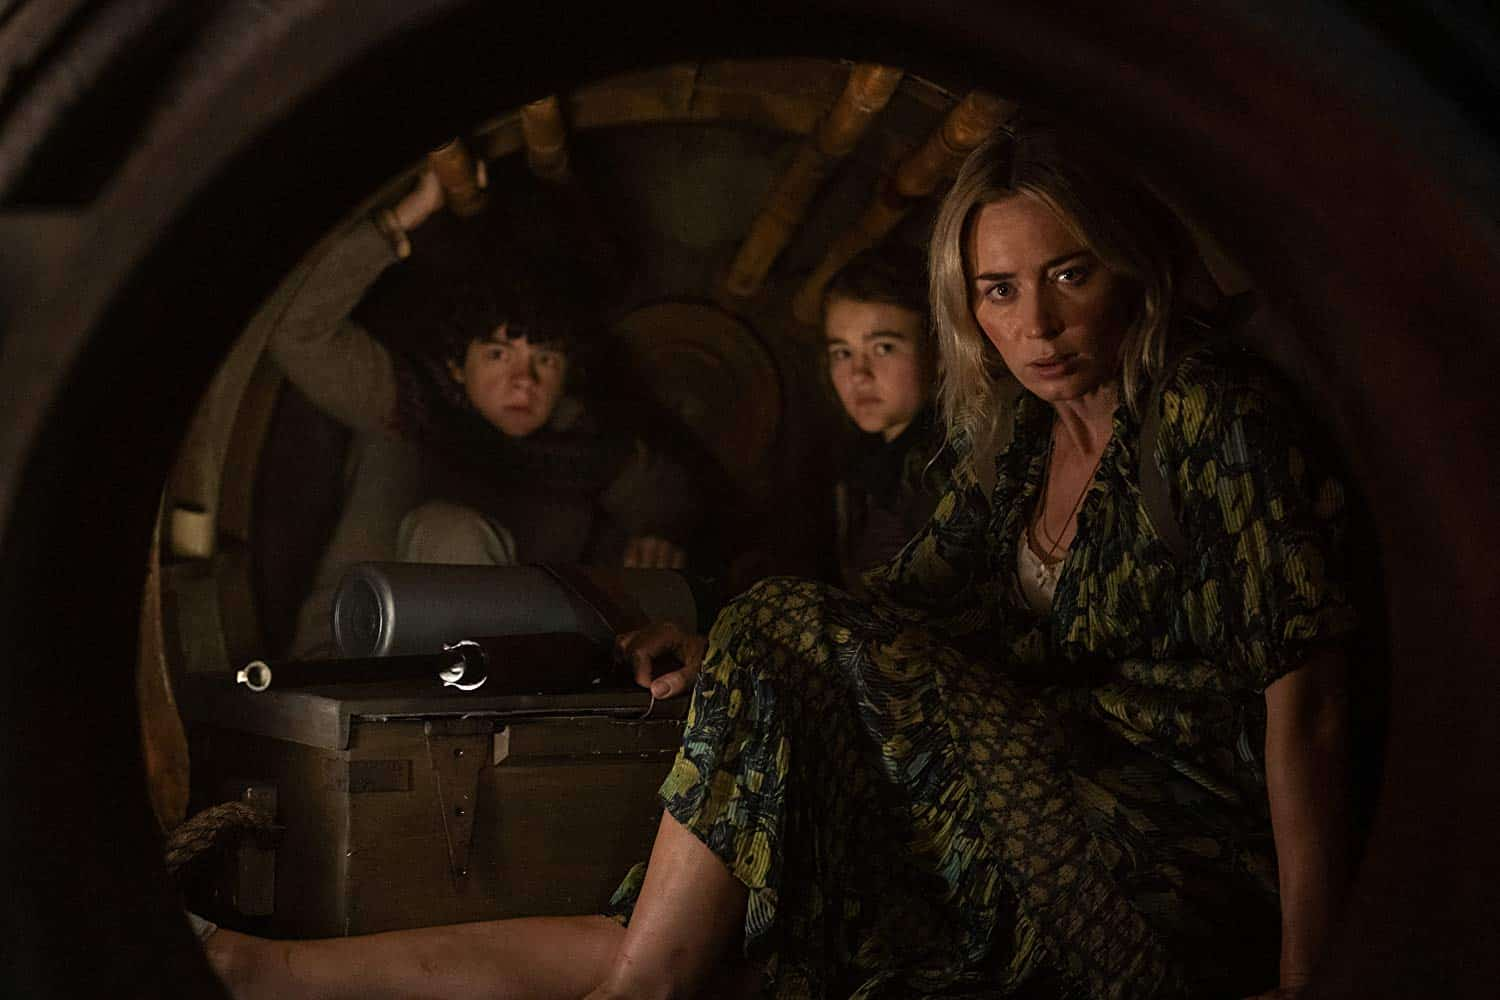 Trailer Alert: A Quiet Place Part II